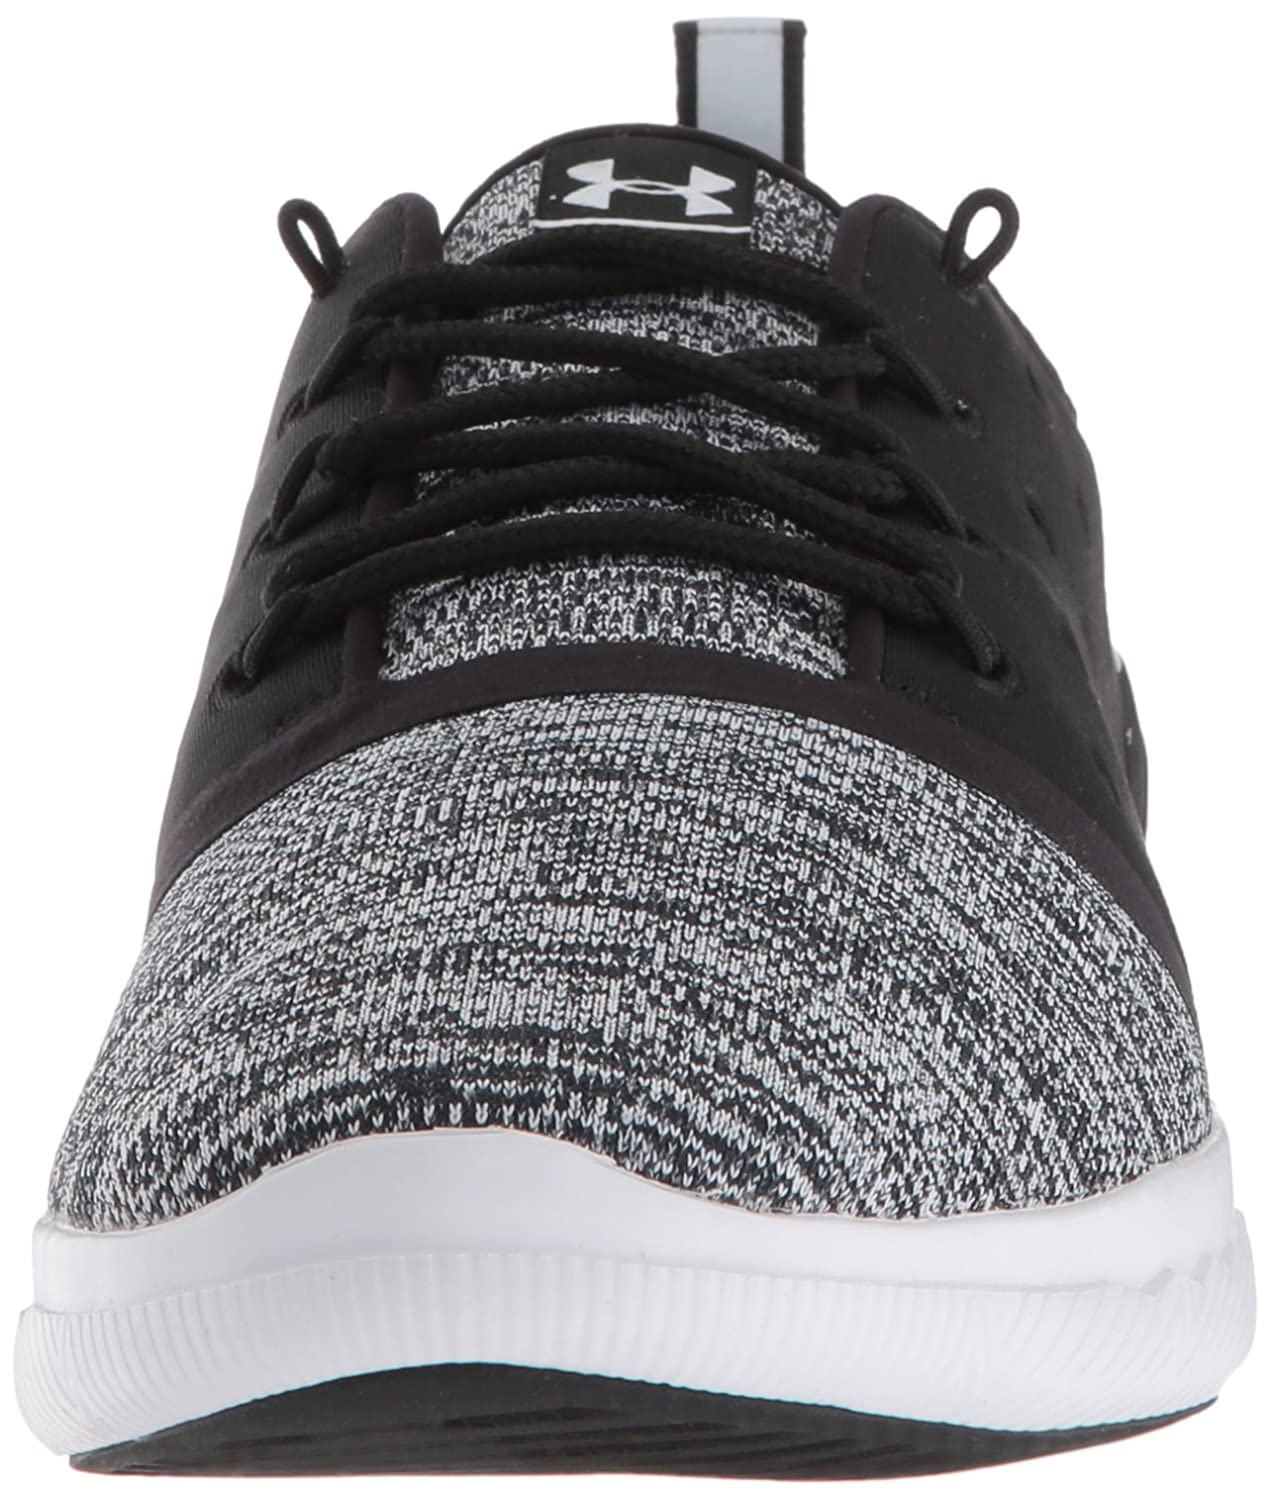 Under Armour Women's Charged 24/7 Low NM Running Shoe B076SKFV4S 8.5 M US|Black